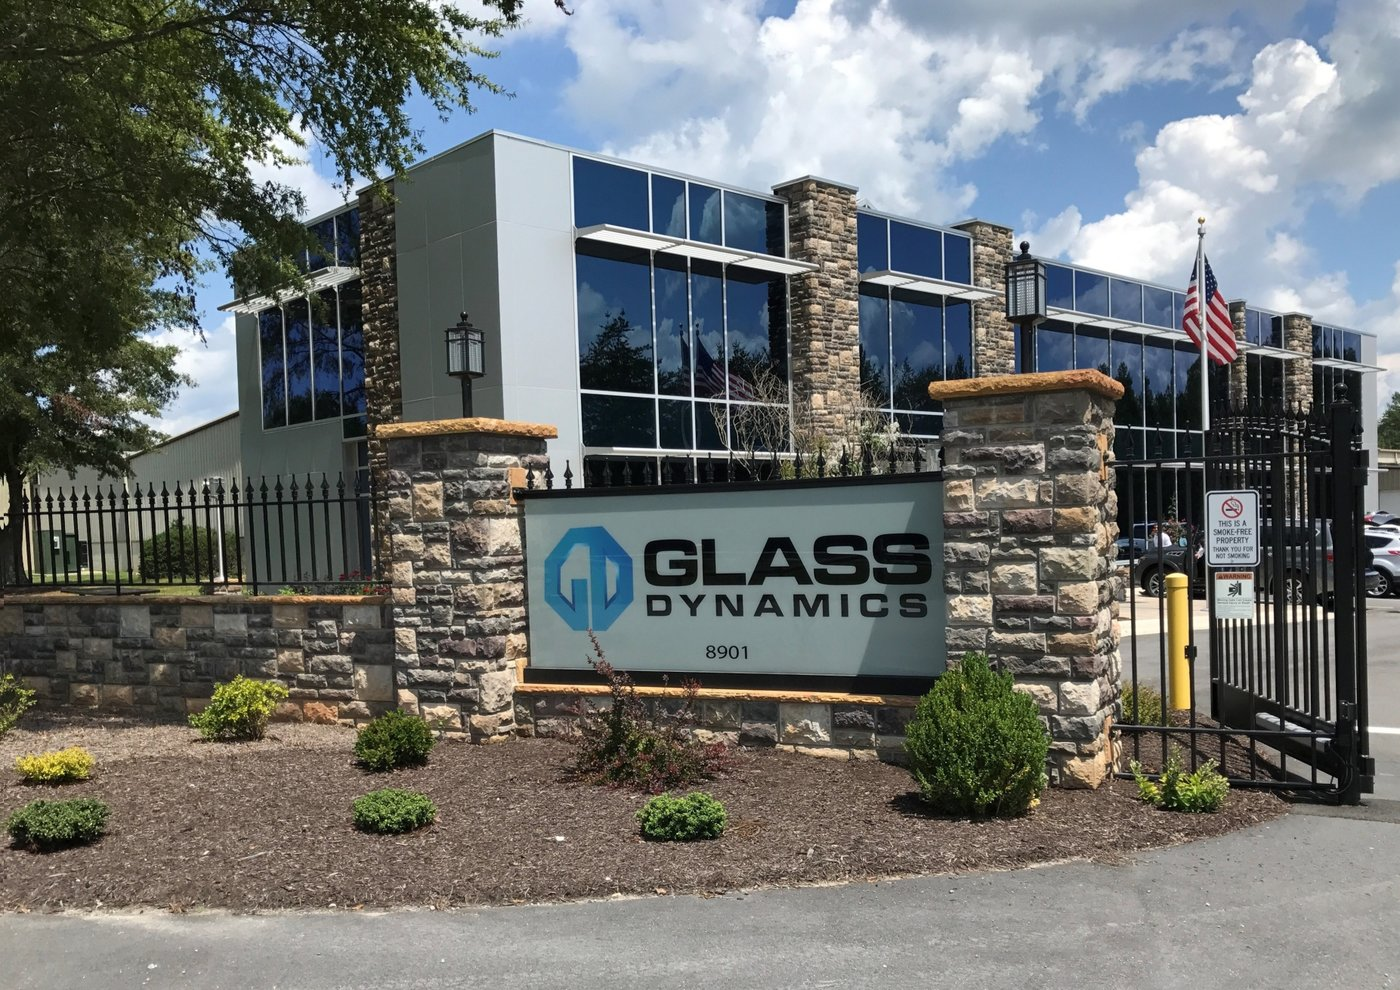 Purchasing 100% of the share capital of the Glass Dynamics Inc.